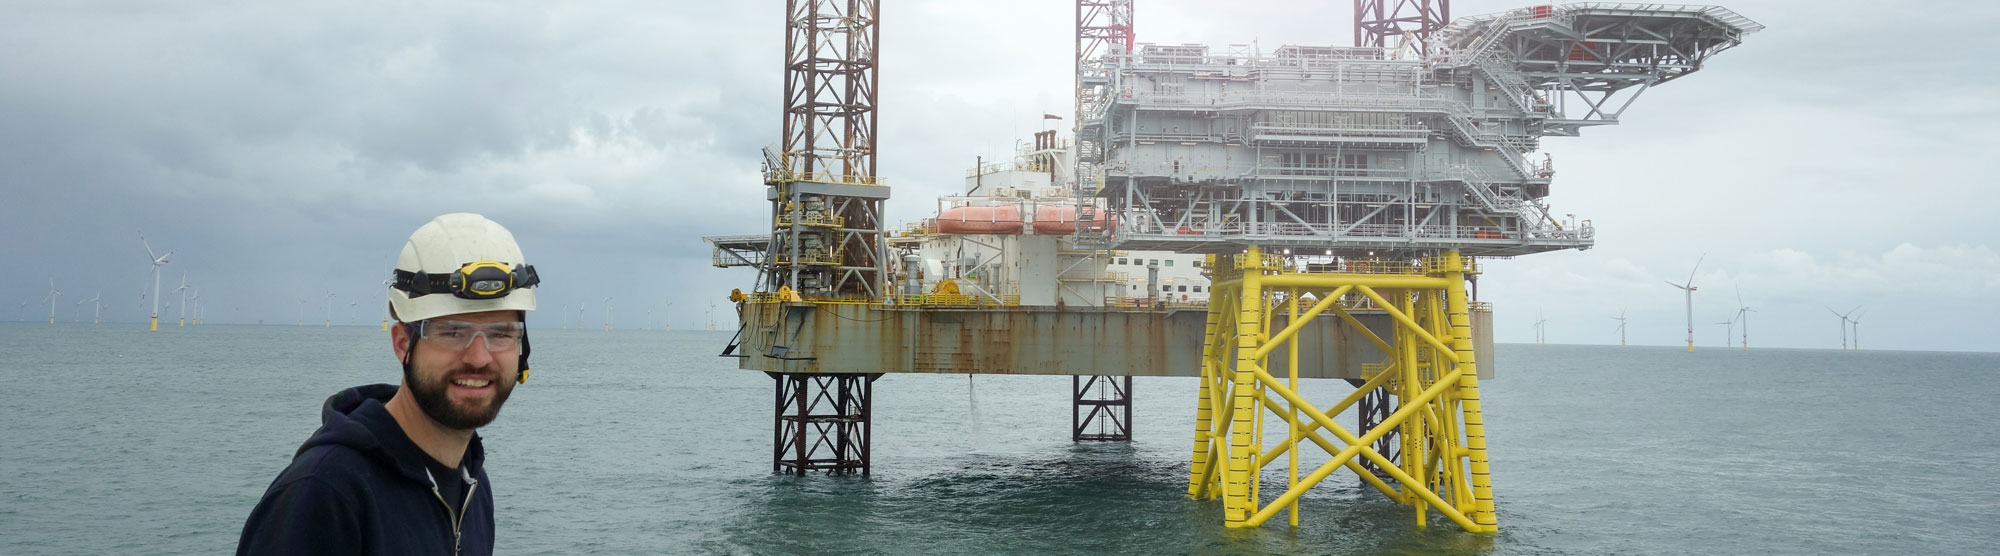 Oil rig life - what's it like living on an offshore oil platform